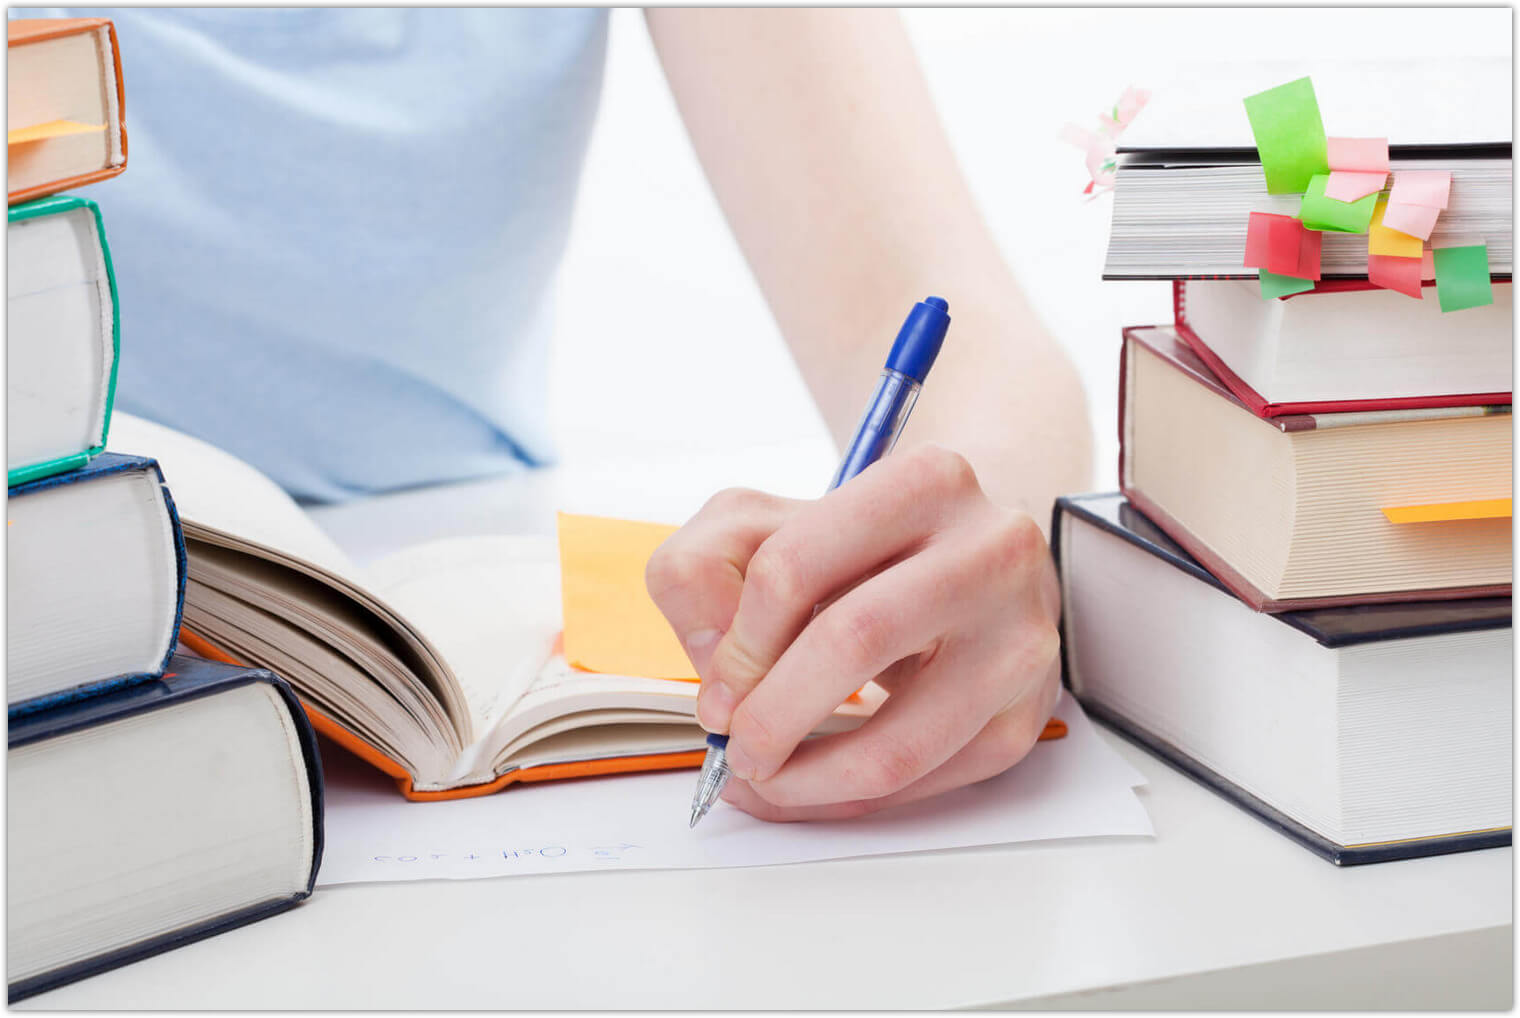 020 Research Paper Topics Education Topic Wondrous Suggestions Ideas Full